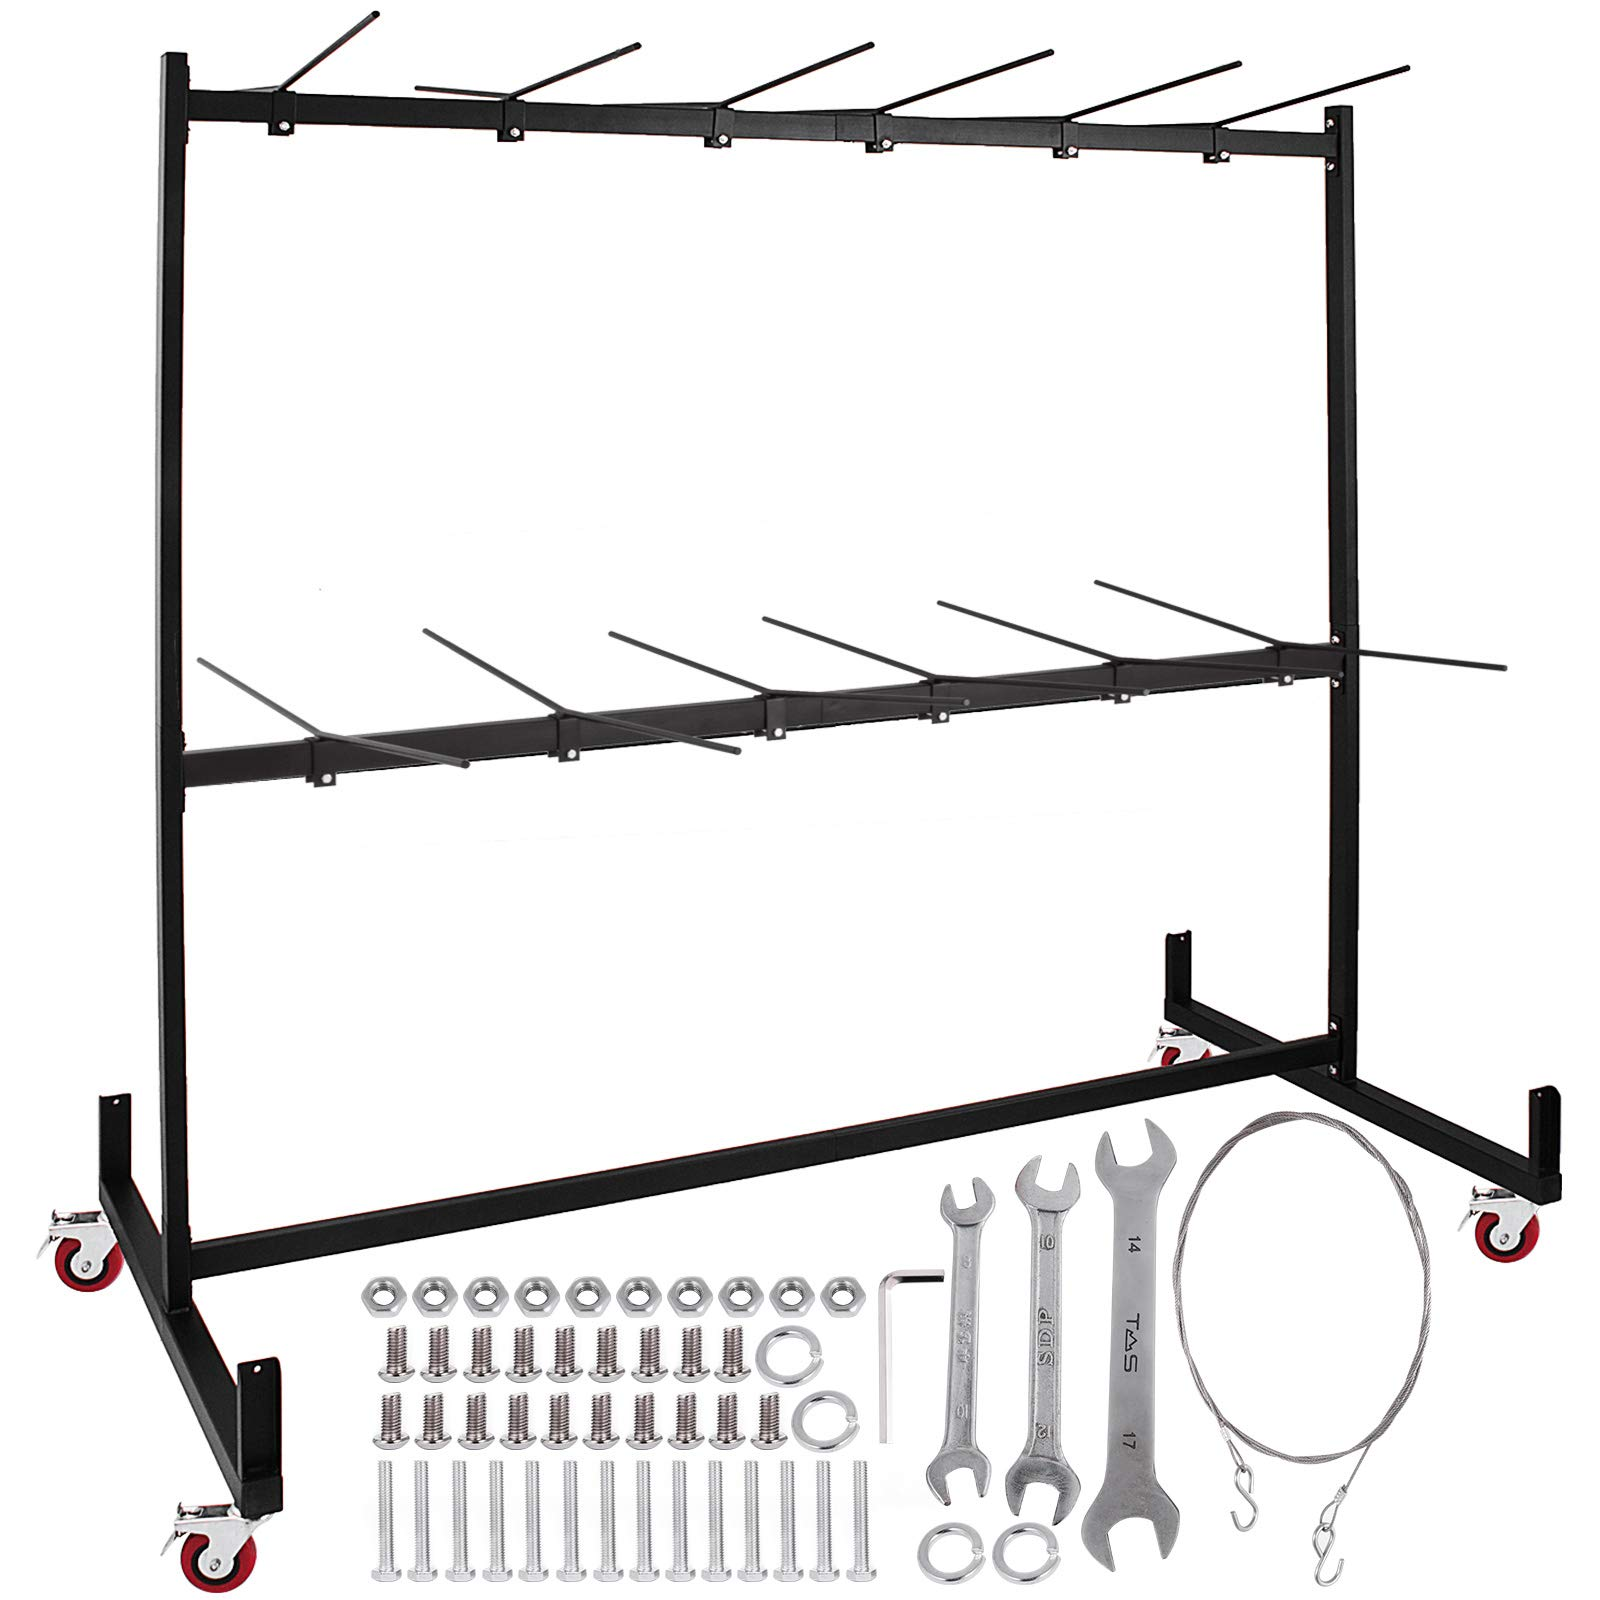 Happybuy Two-Tier Folding Chair Rack Dolly Cart